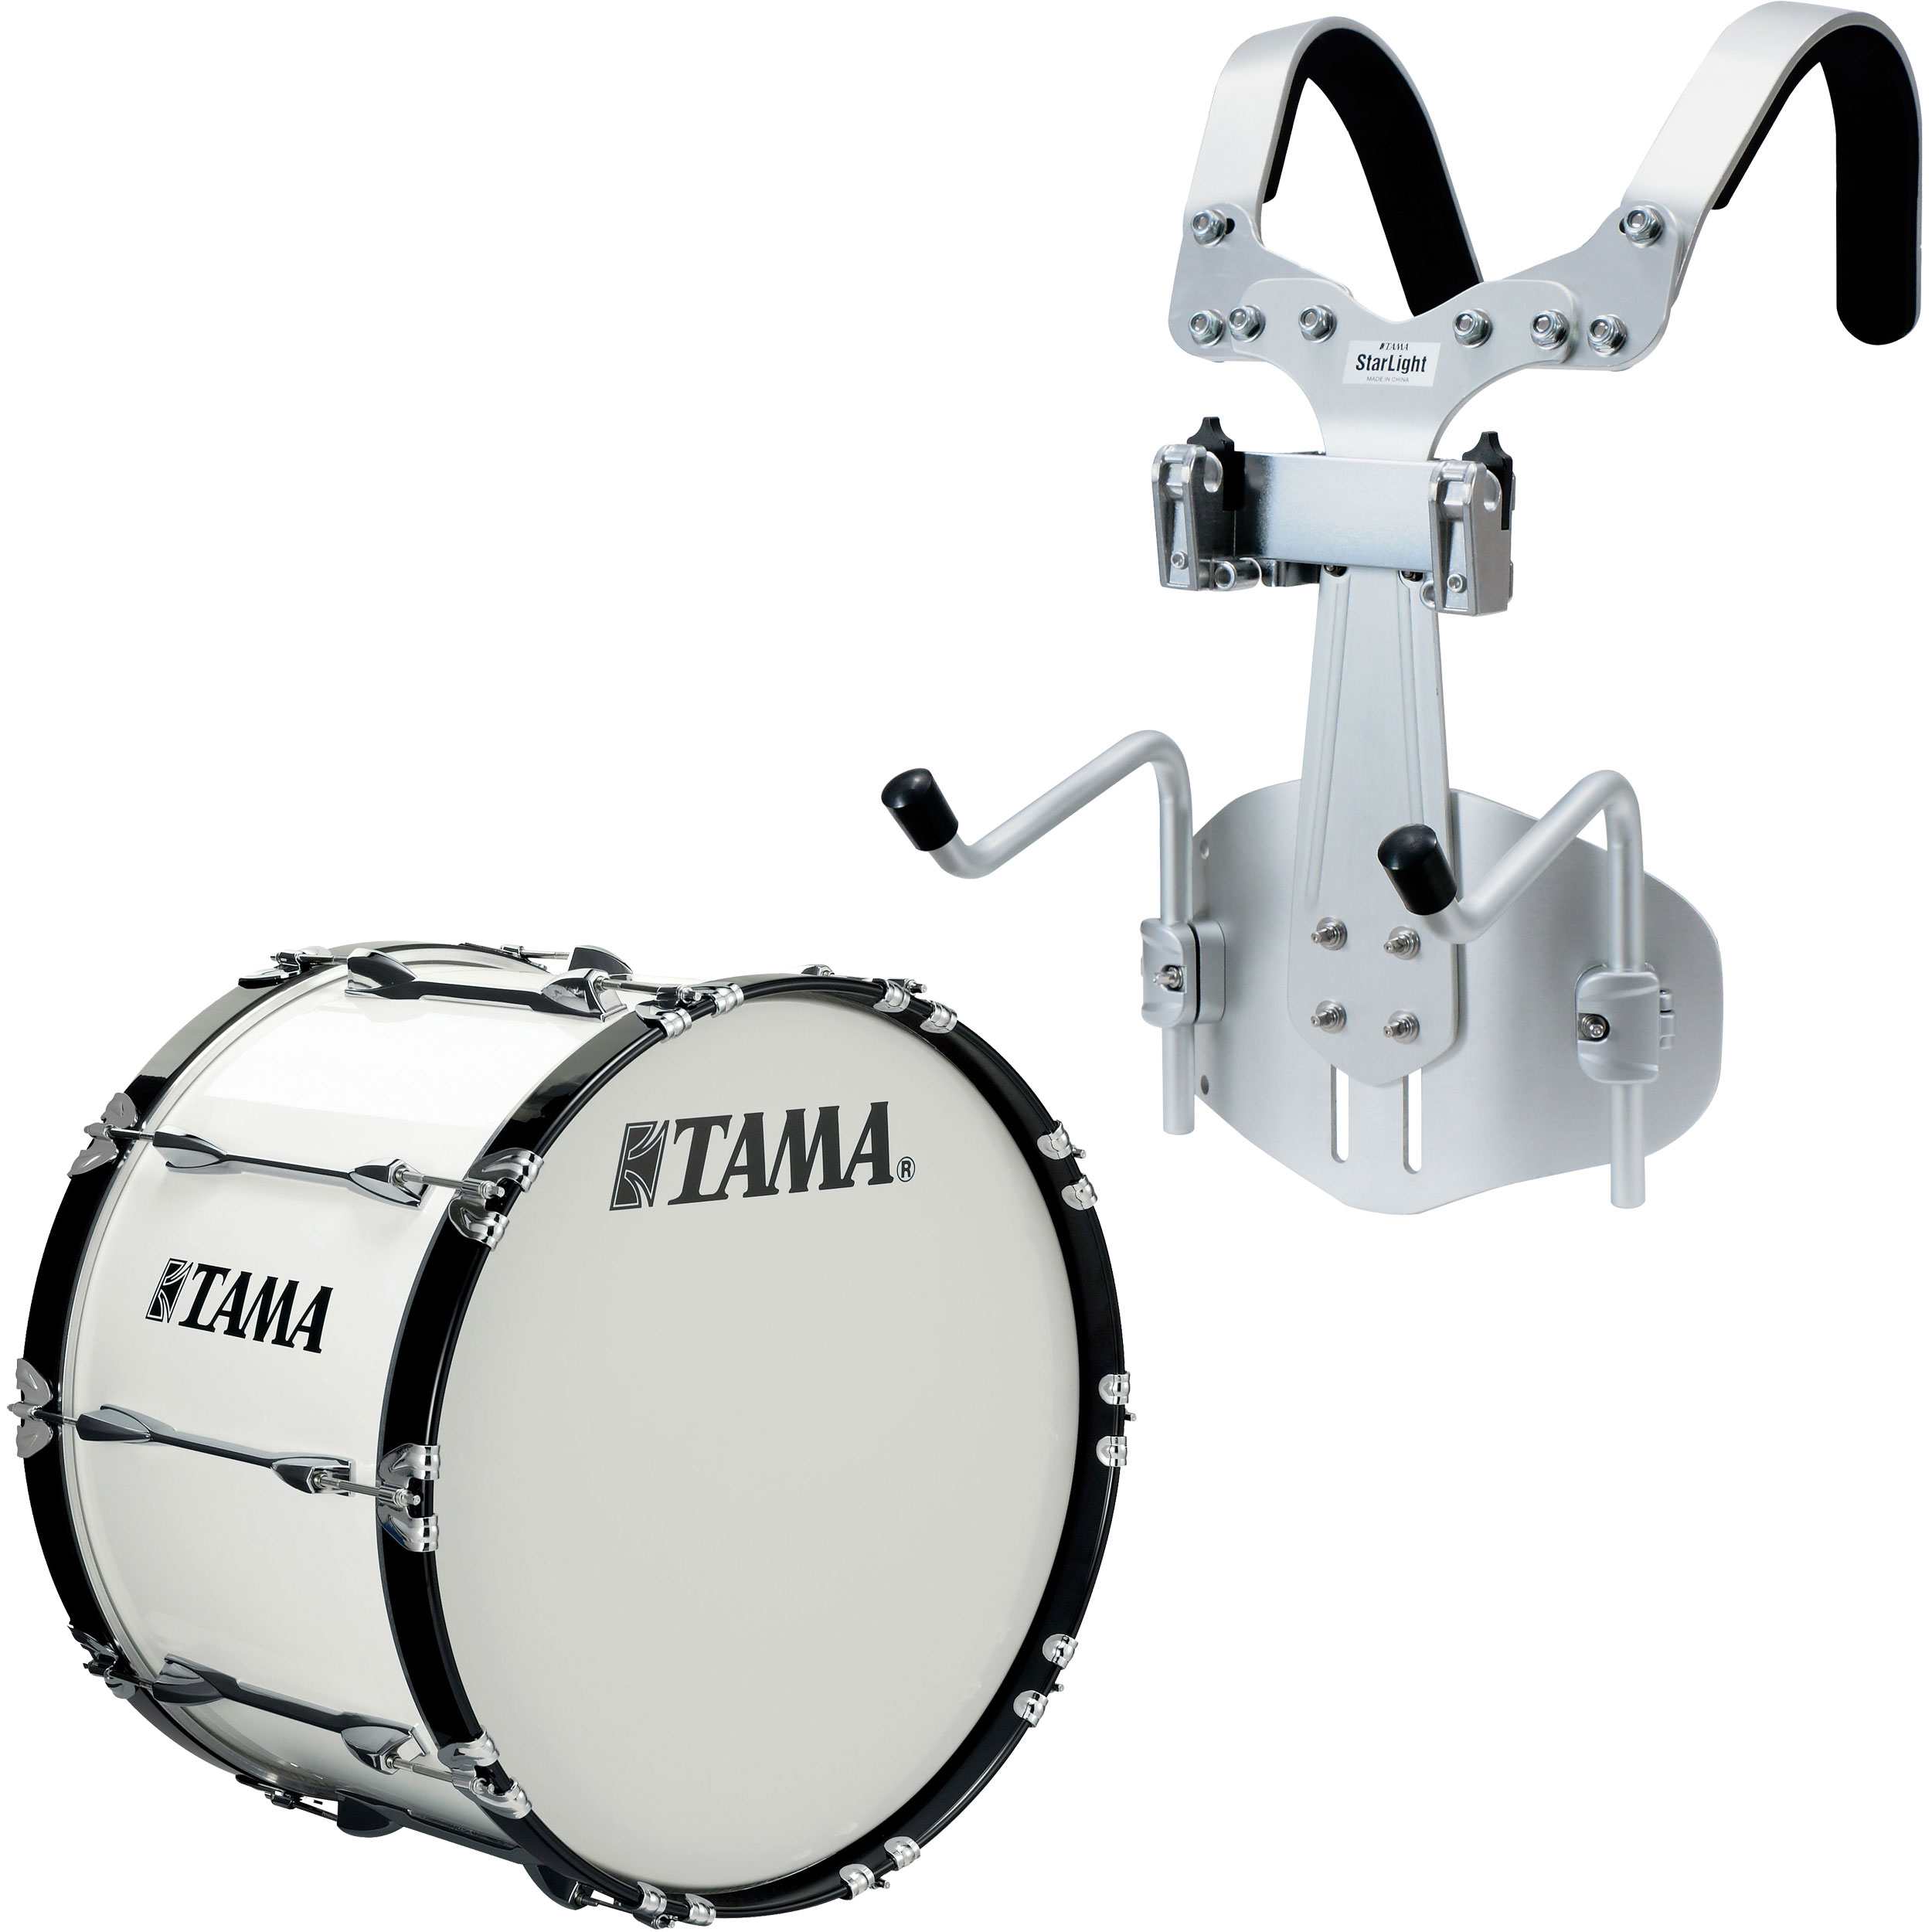 "Tama 28"" StarLight Marching Bass Drum in Sugar White Wrap with Carrier"